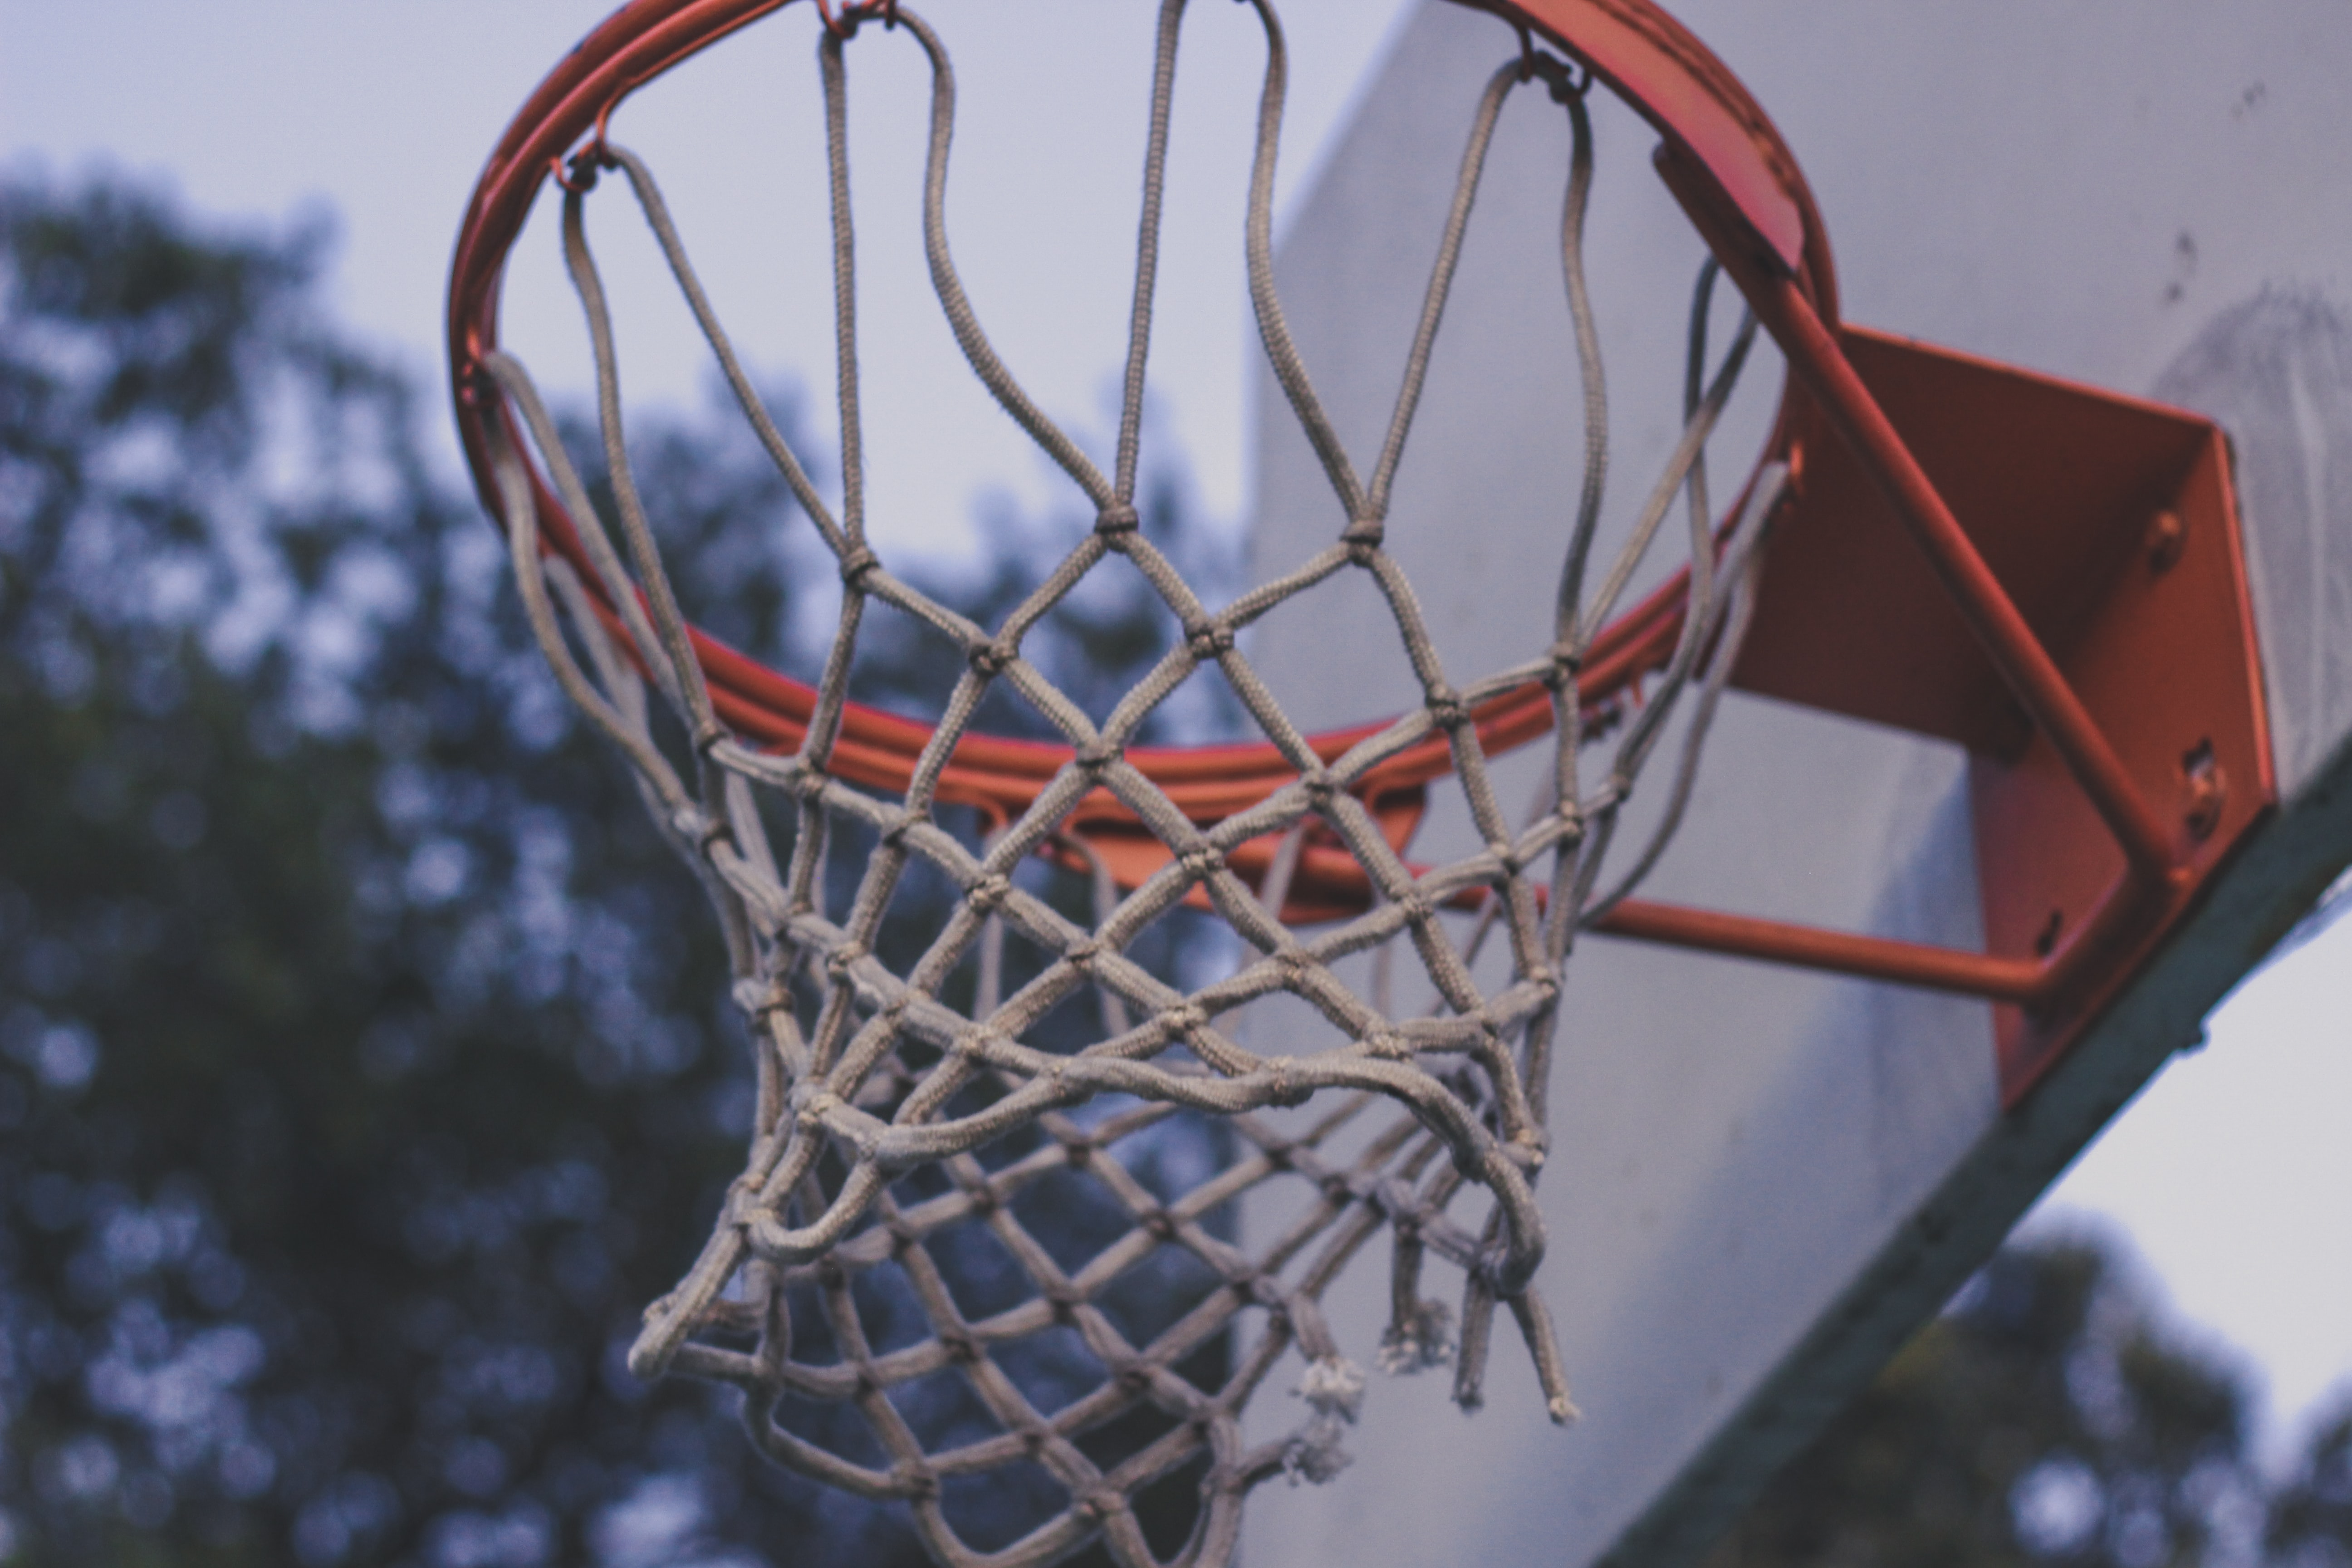 closeup photo of basketball ring